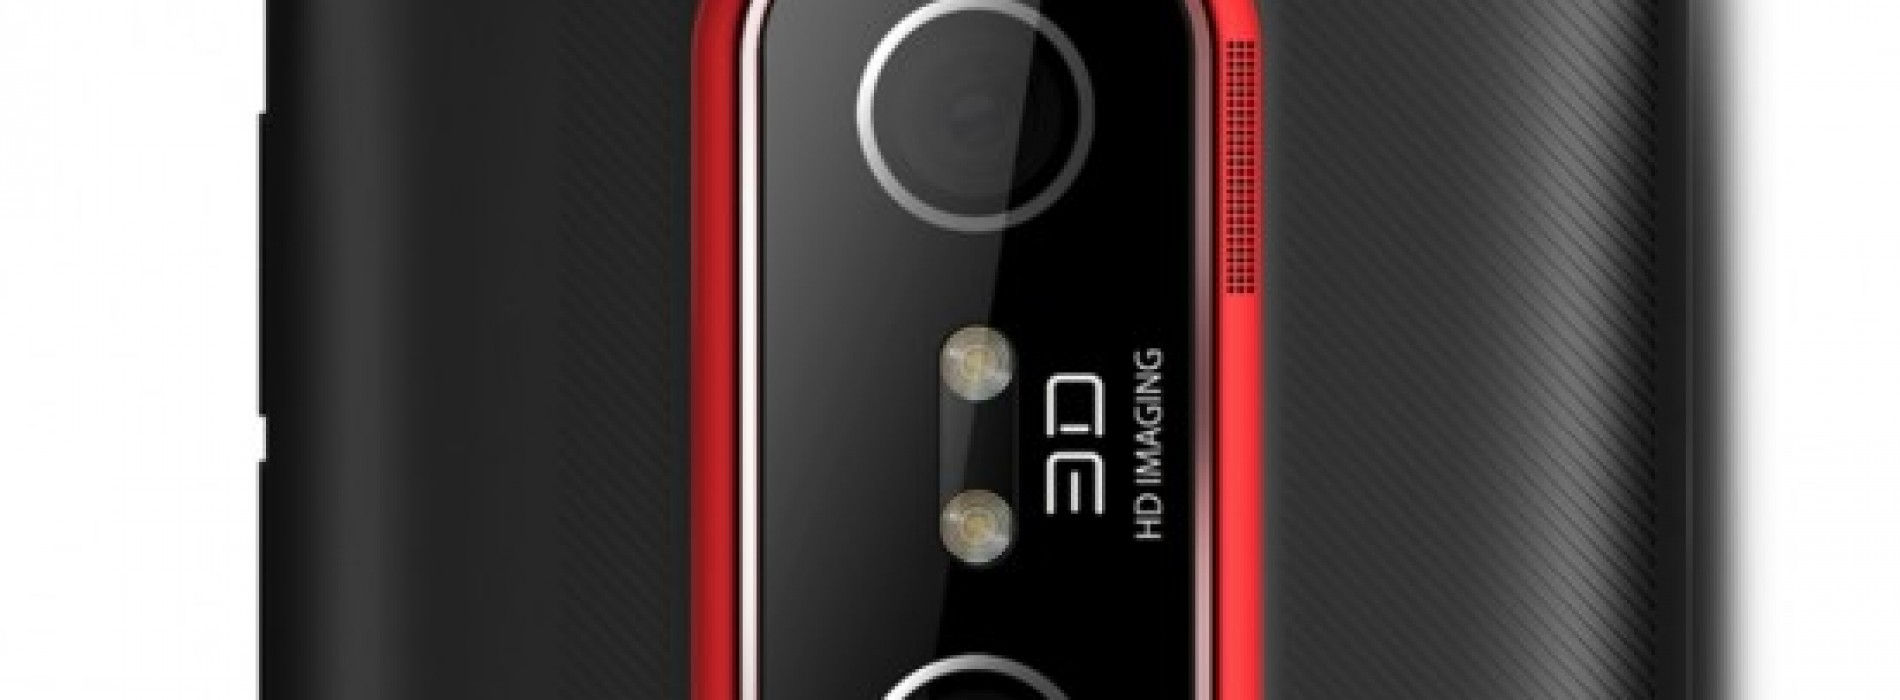 HTC Evo 3D ICS update comes to EMEA, Sprint users left wanting it too